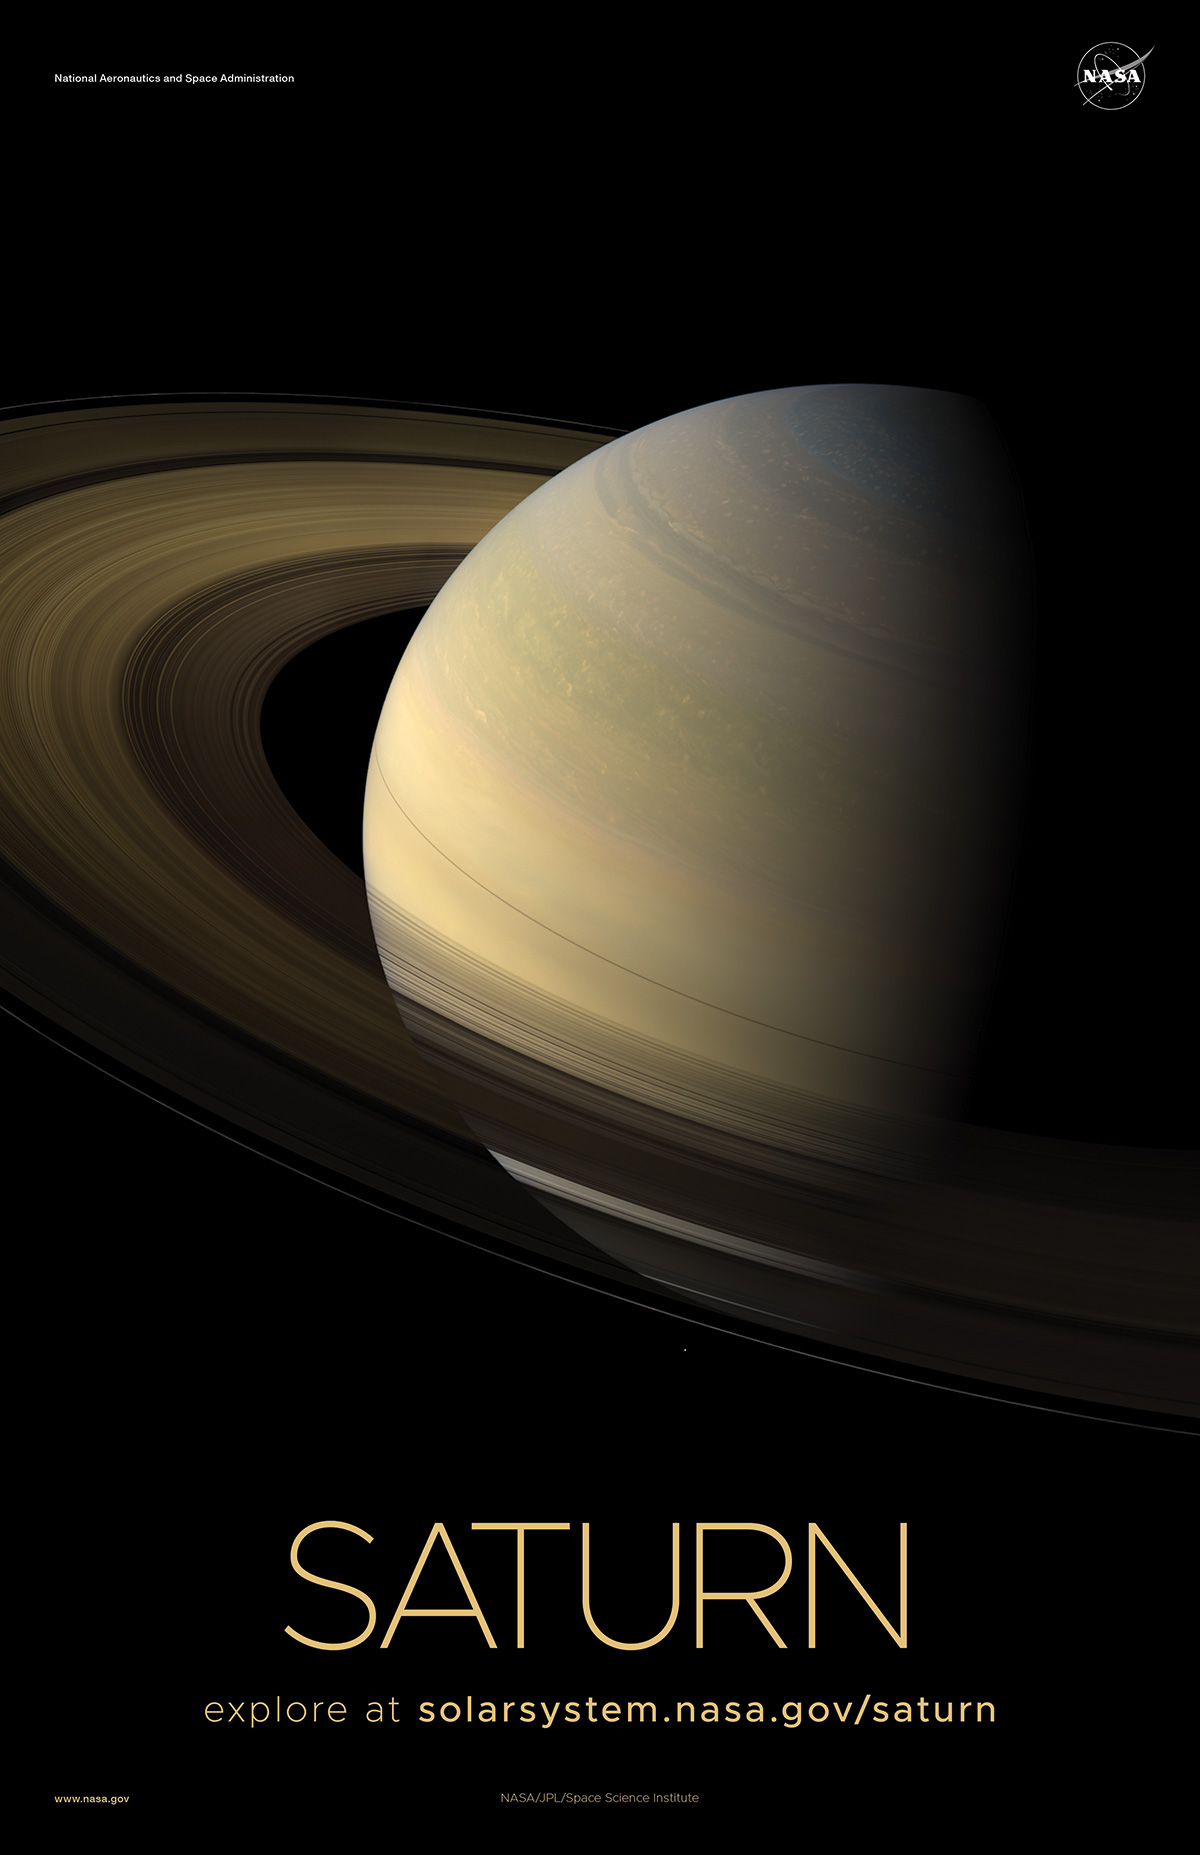 Saturn Poster - Version C | NASA Solar System Exploration View Of The Sun From Saturn